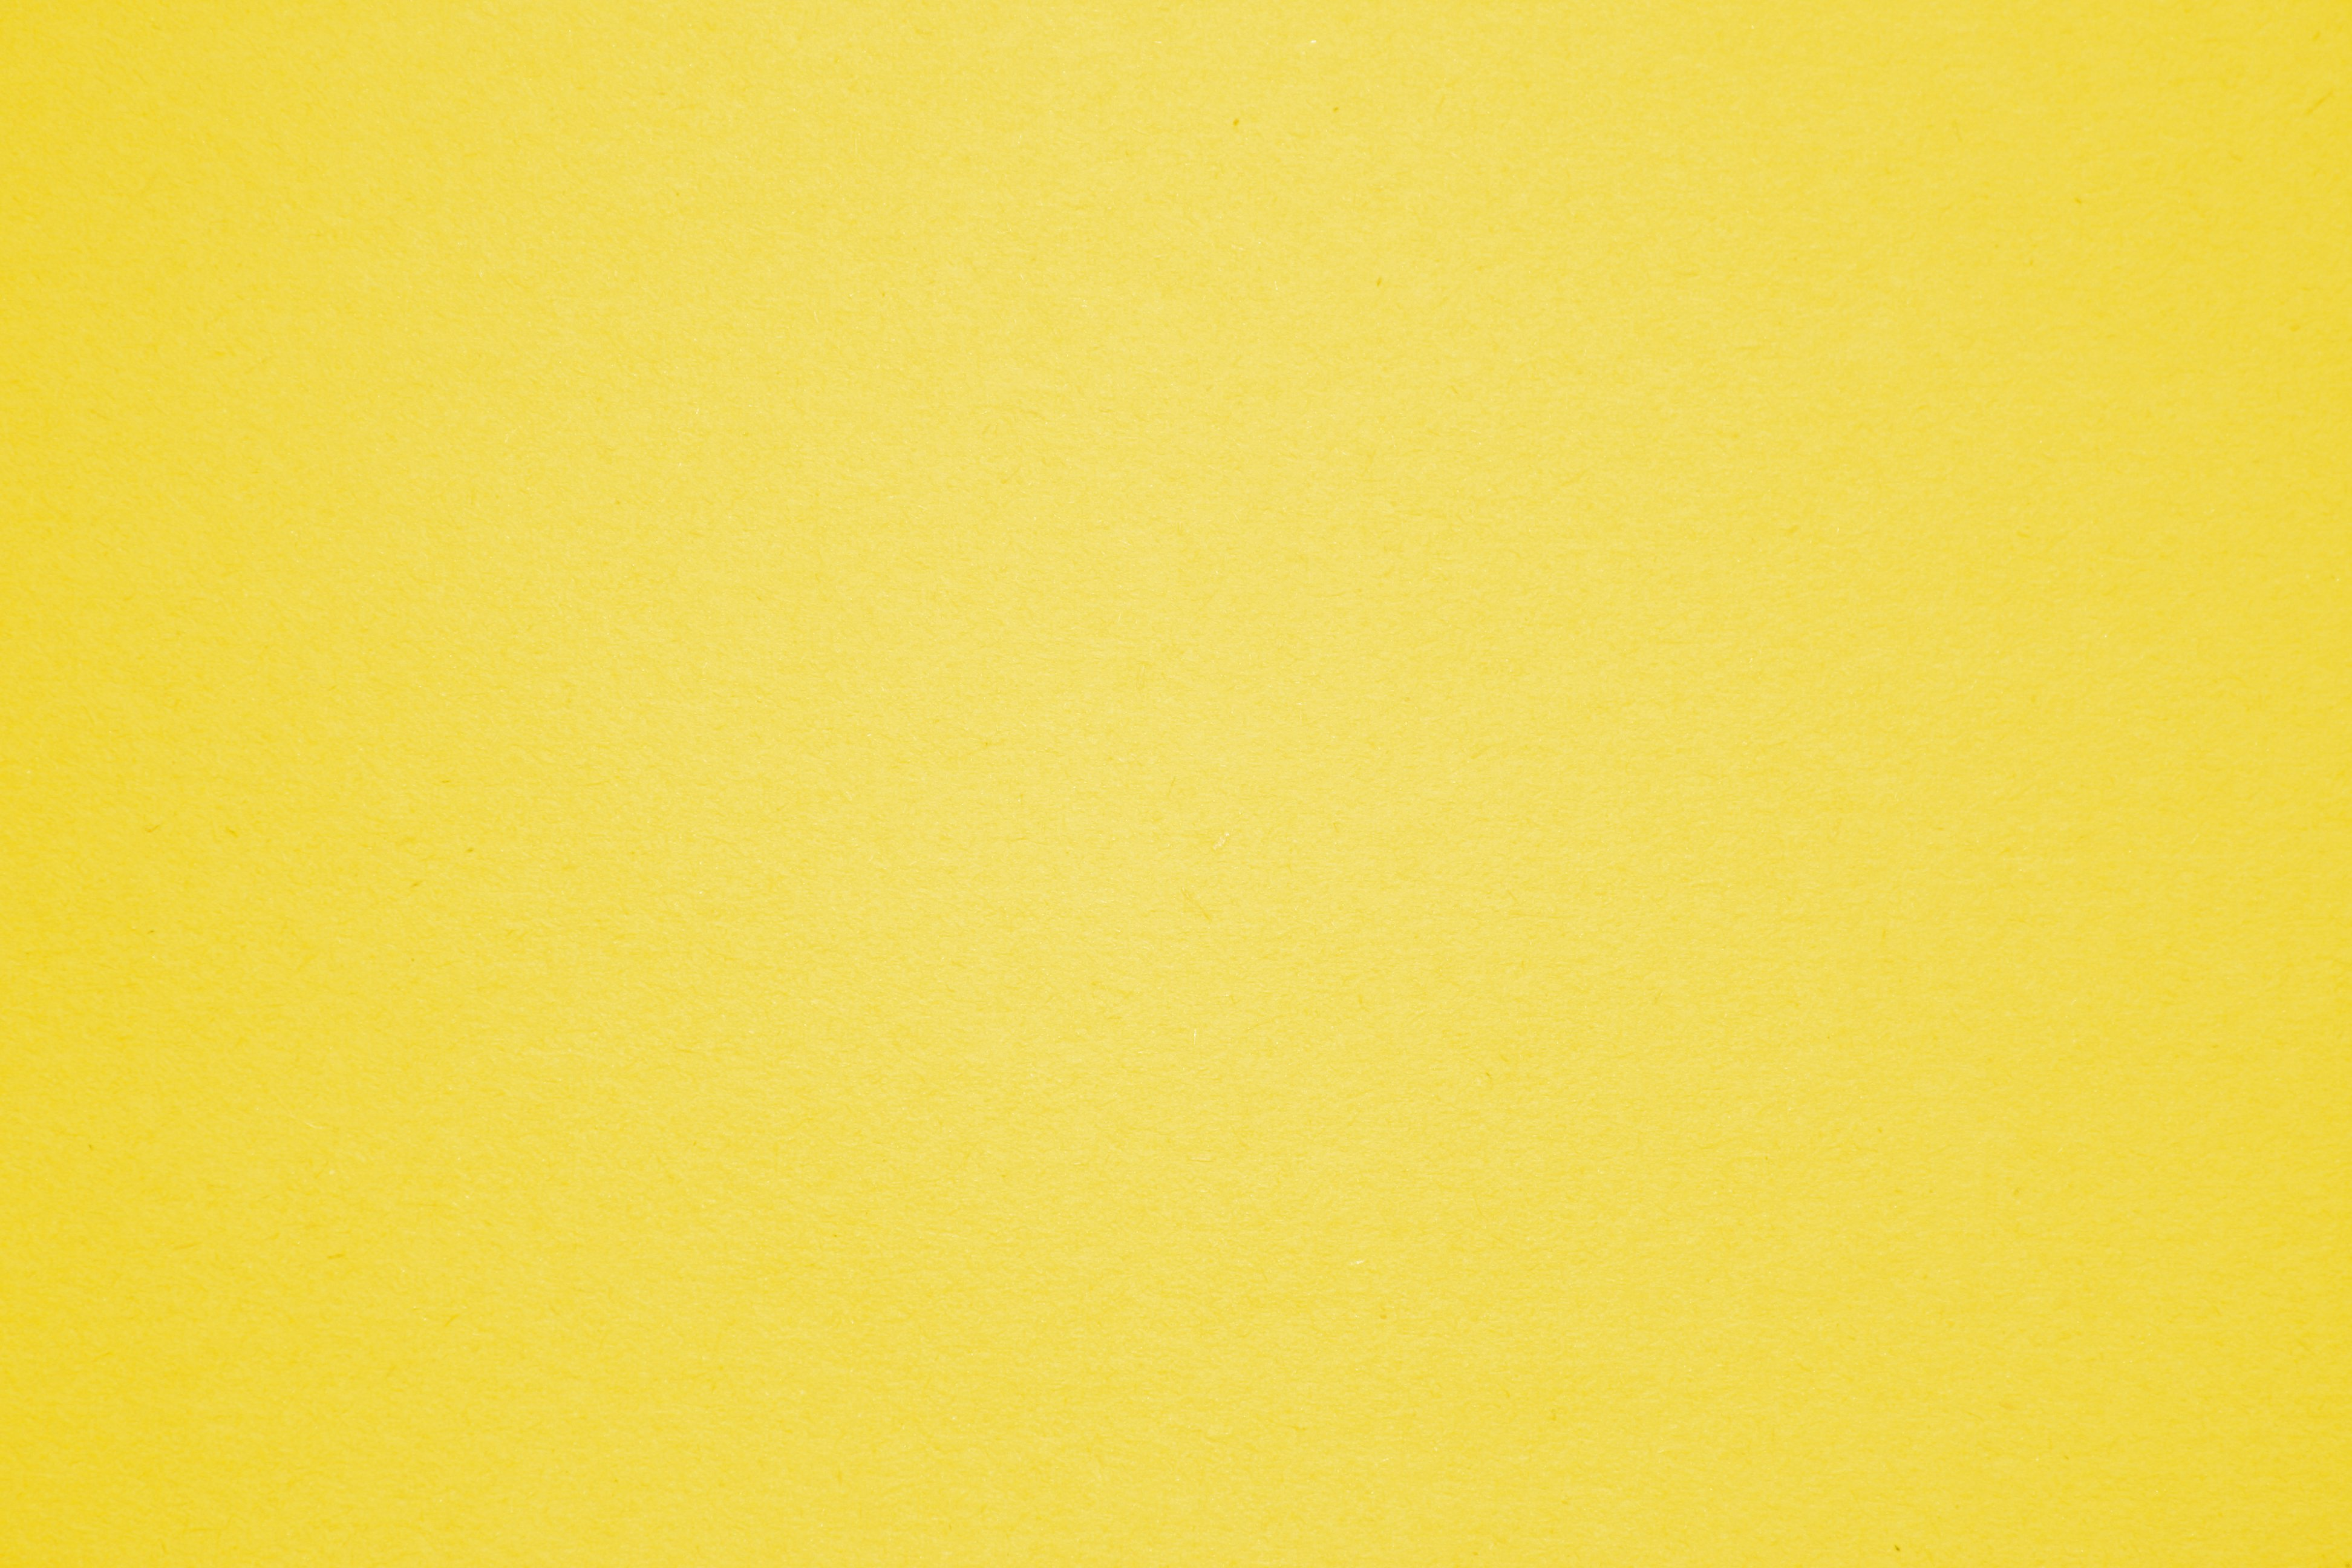 Essay on colour yellow